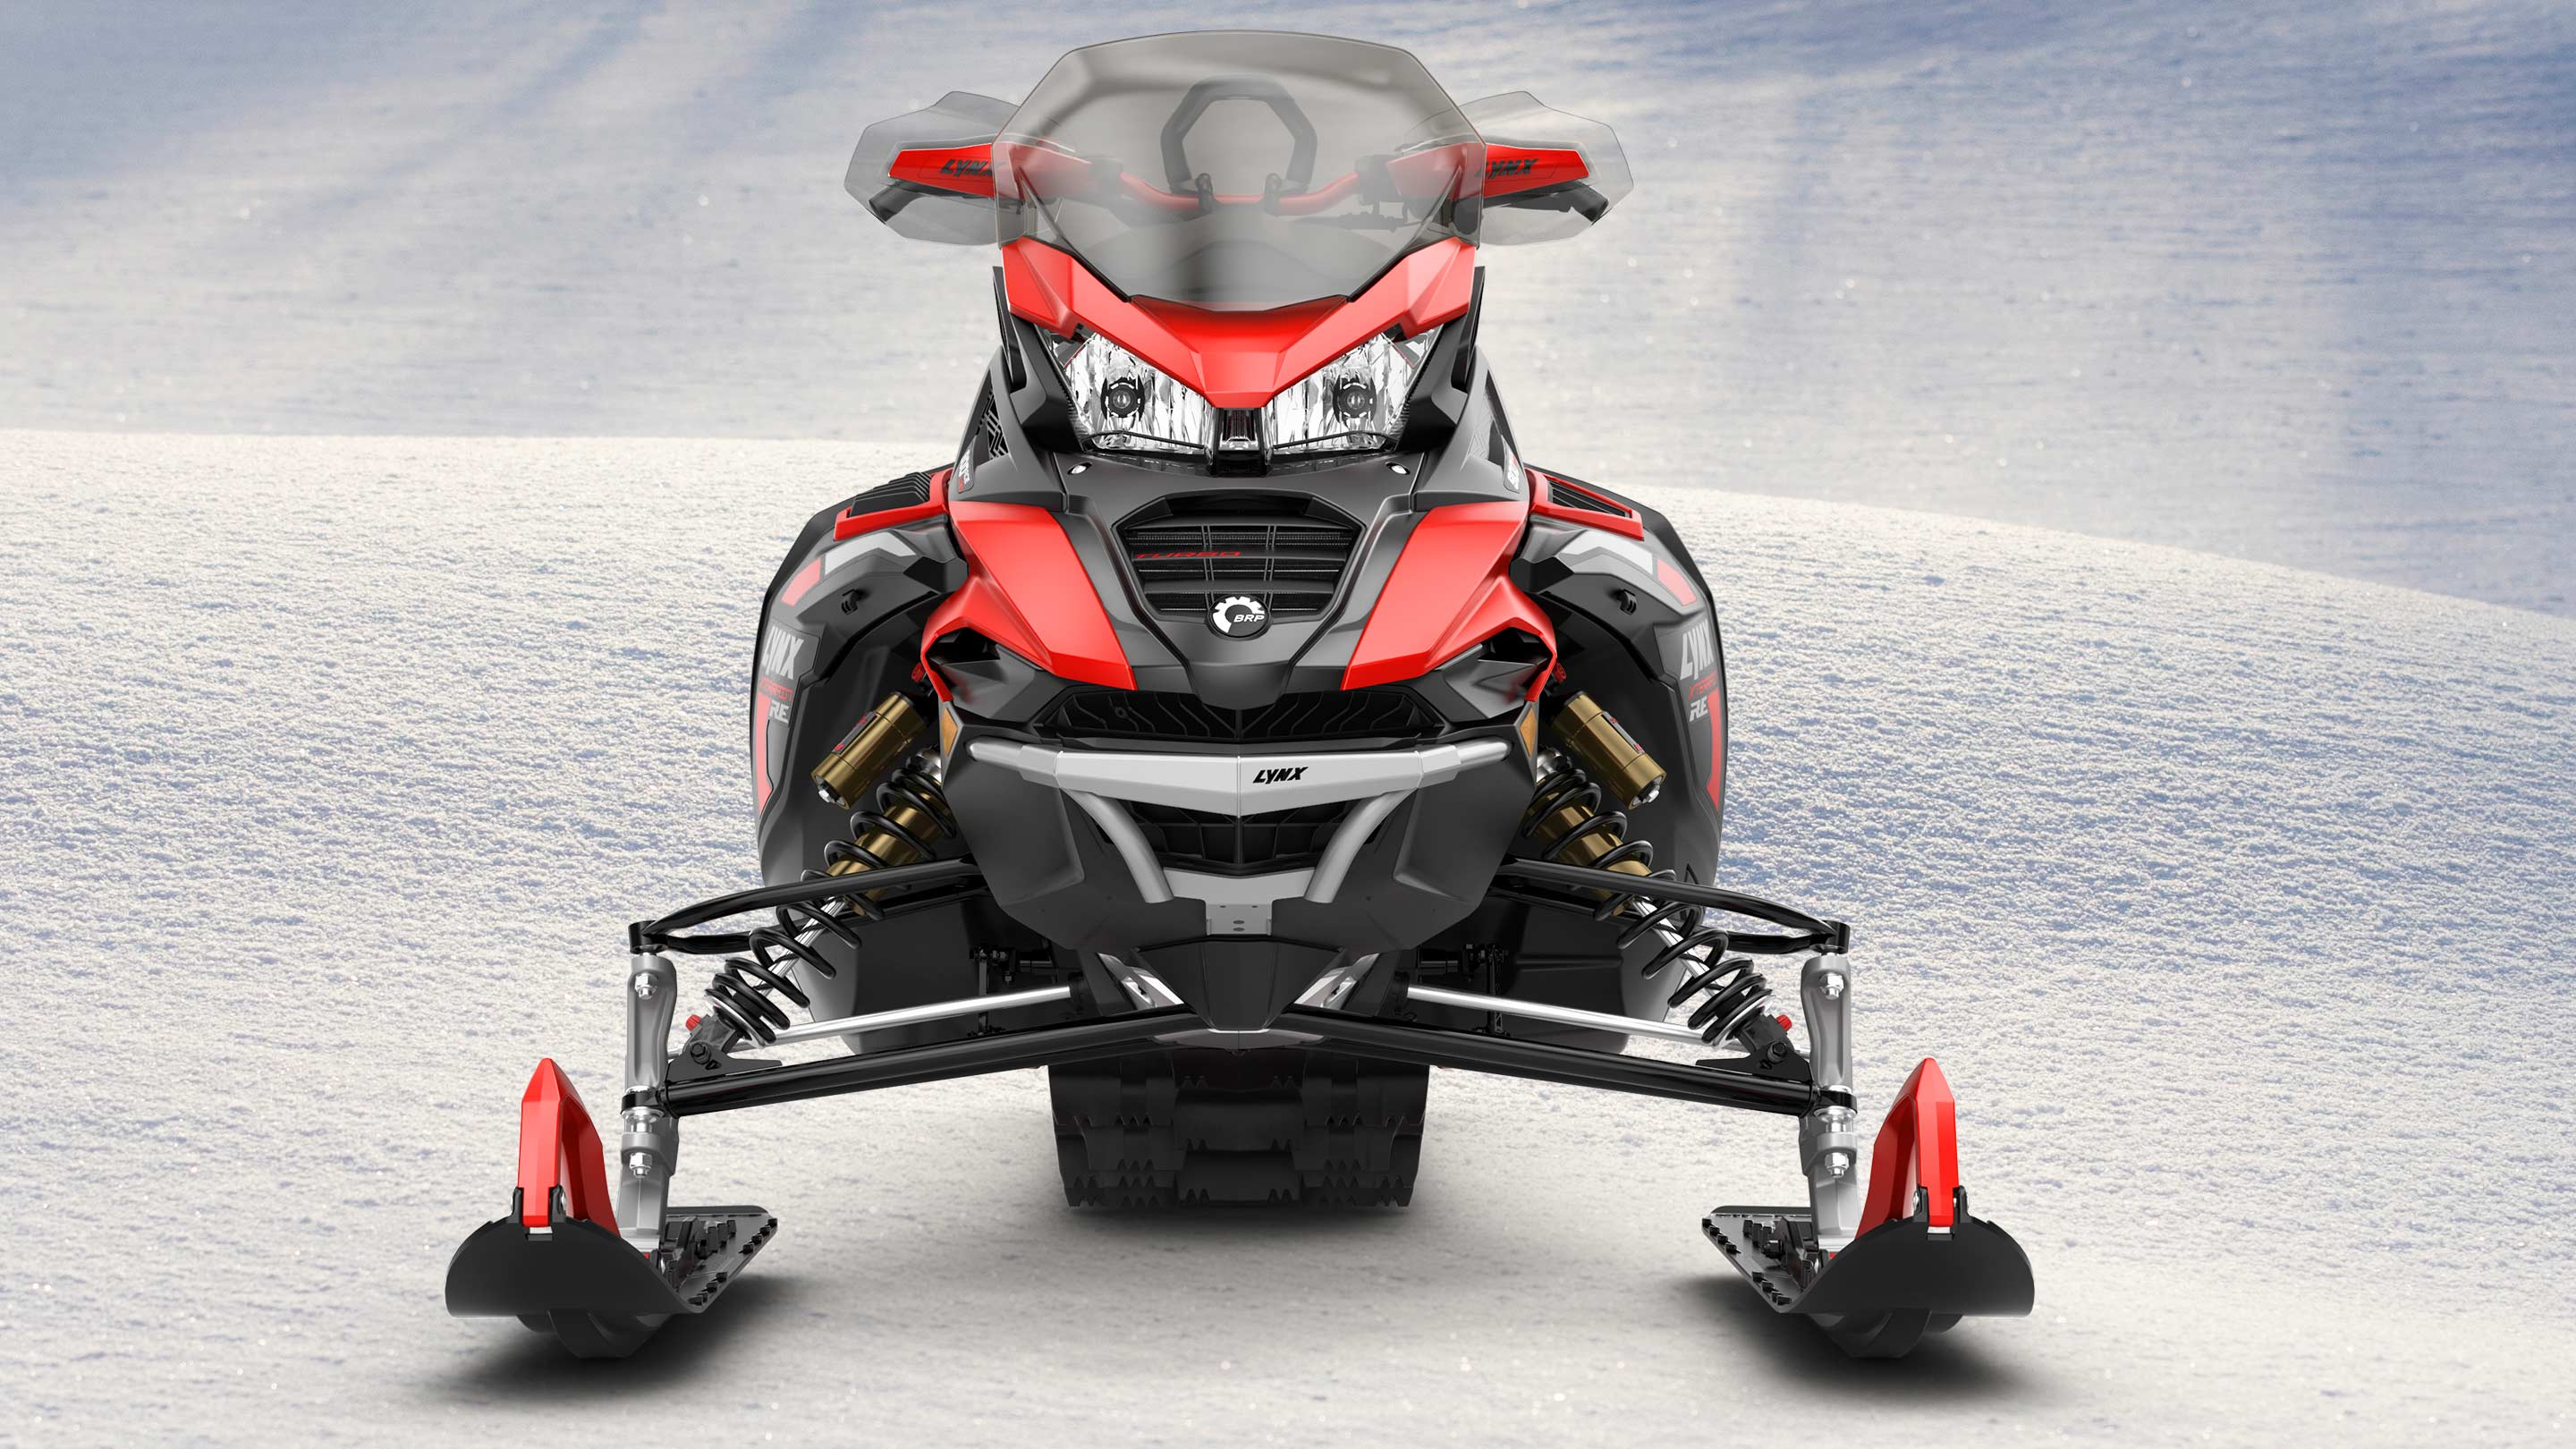 Front view of Lynx Xterrain RE snowmobile